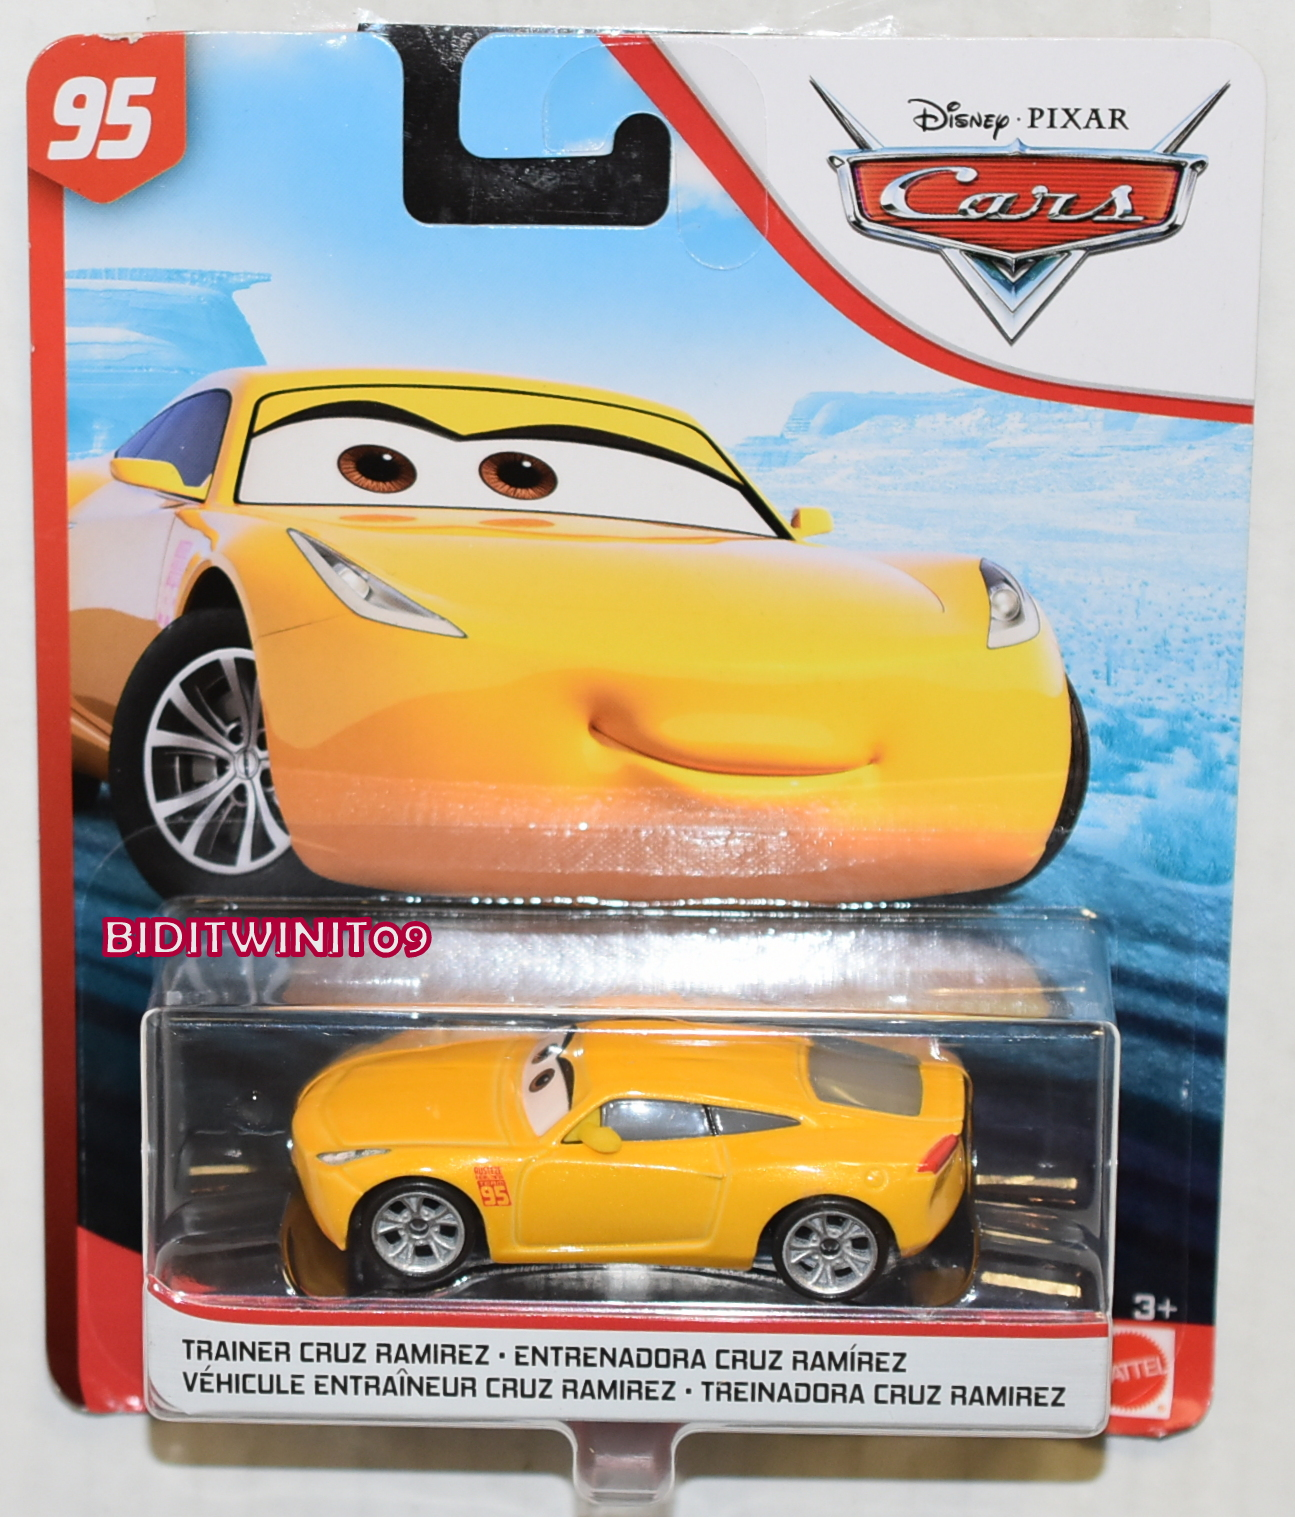 DISNEY PIXAR CARS TRAINER CRUZ RAMIREZ #95 YELLOW